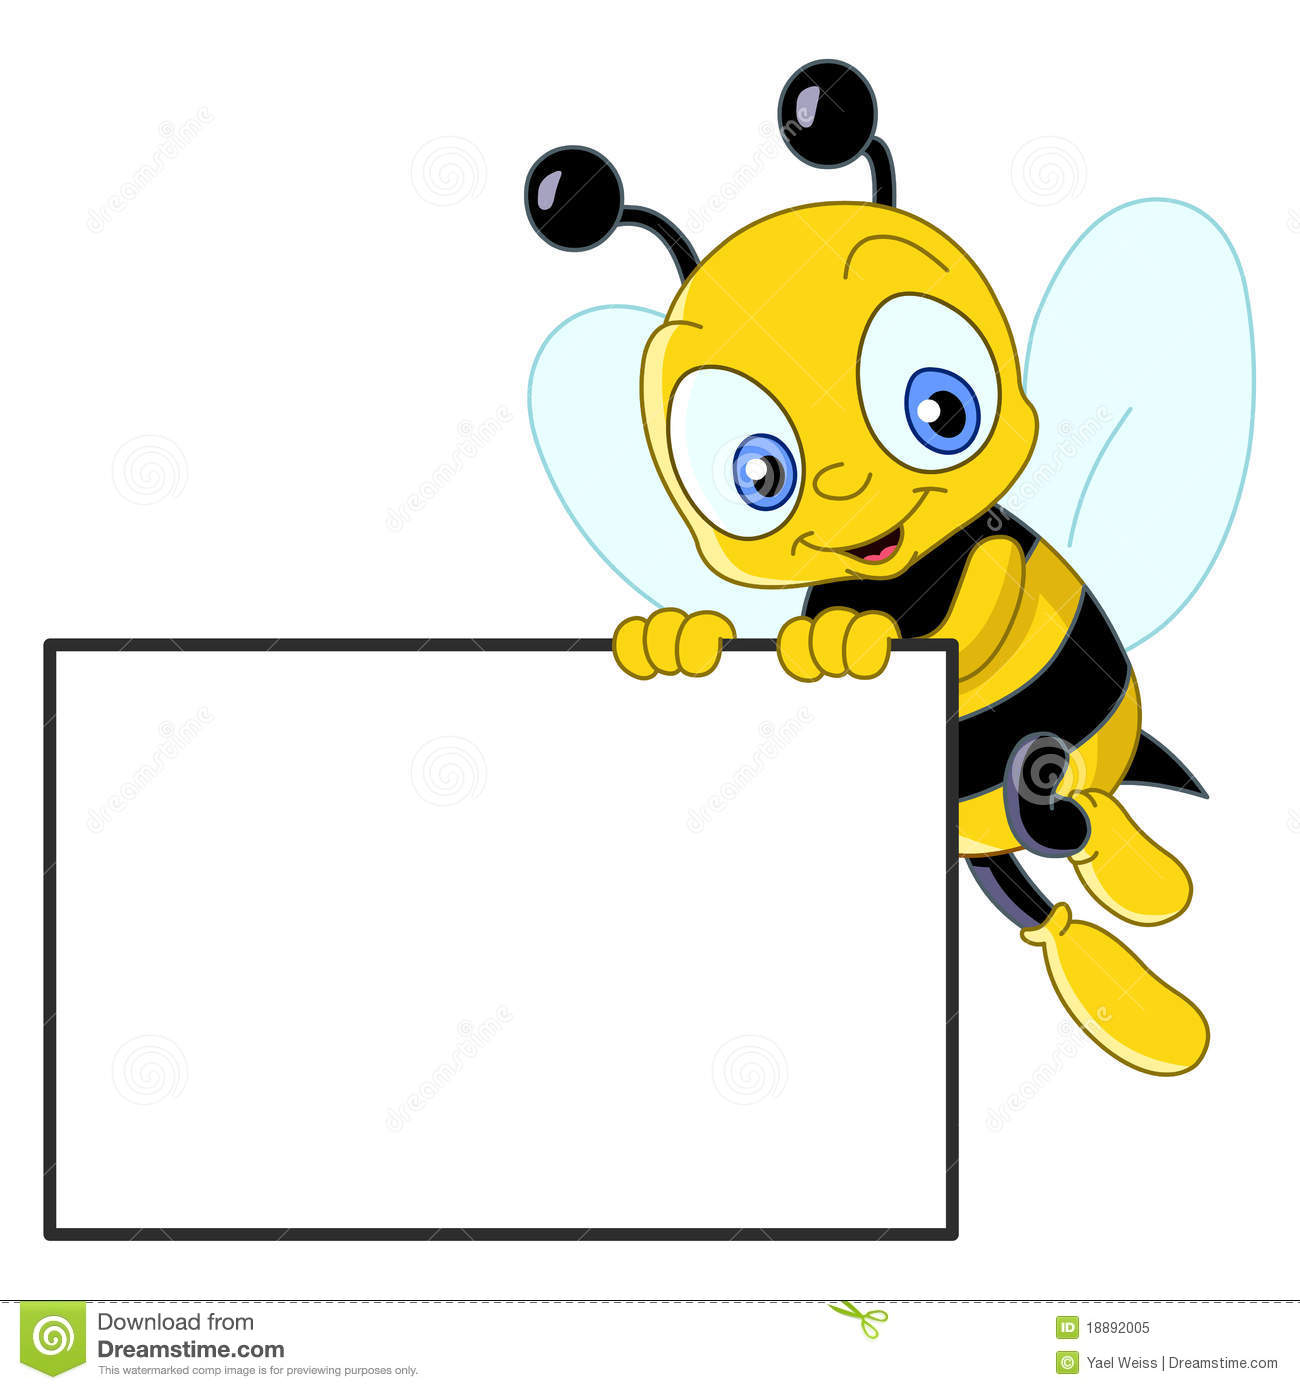 spelling bee clipart clipart panda free clipart images rh clipartpanda com spelling bee winner clipart spelling bee clipart black and white